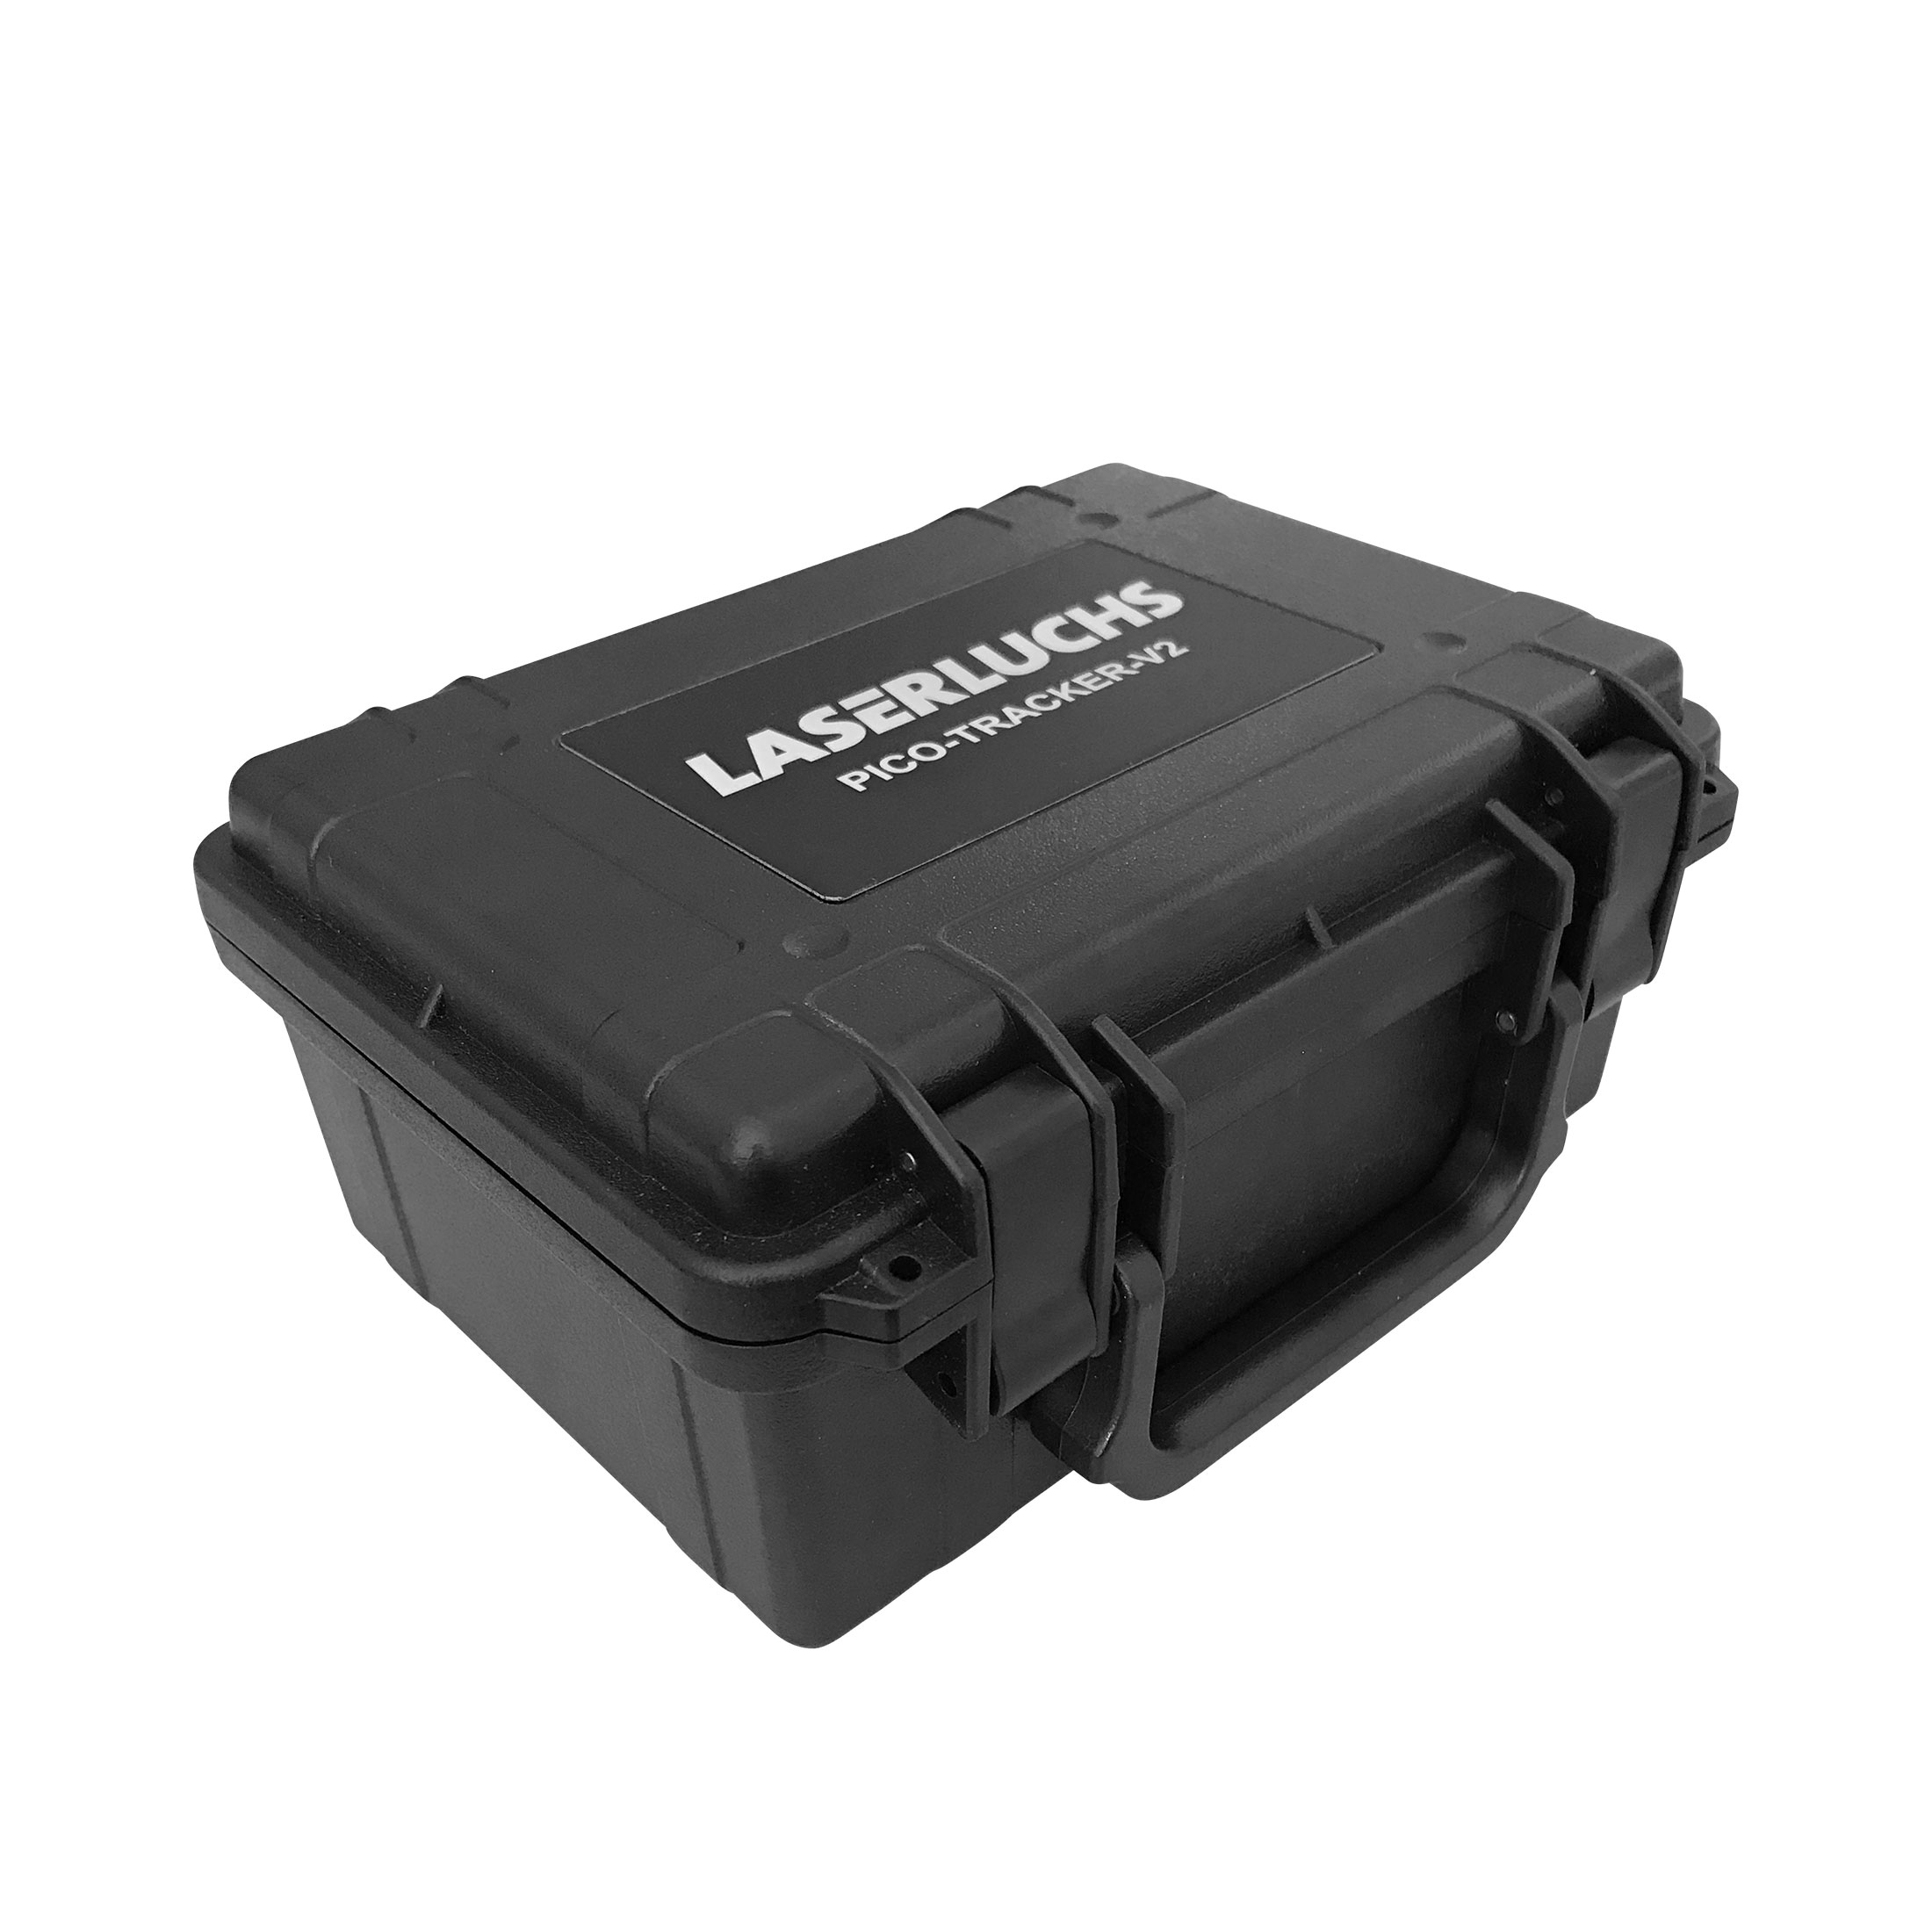 Laserluchs Tactical PICO-TRACKER-V2